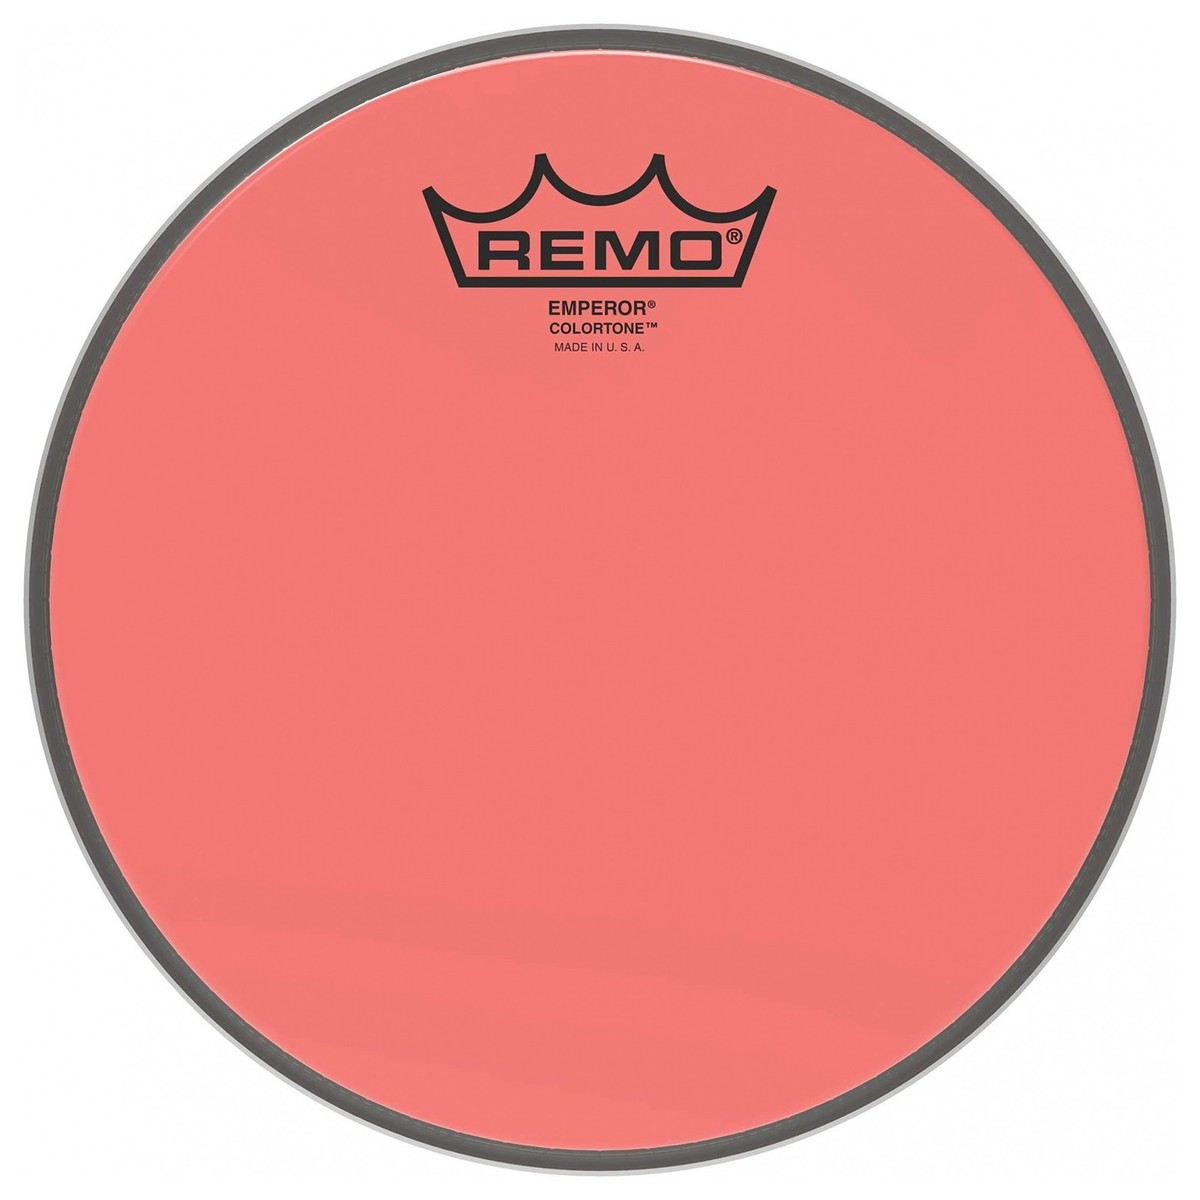 Remo Emperor Colortone Red 15 Drum Head